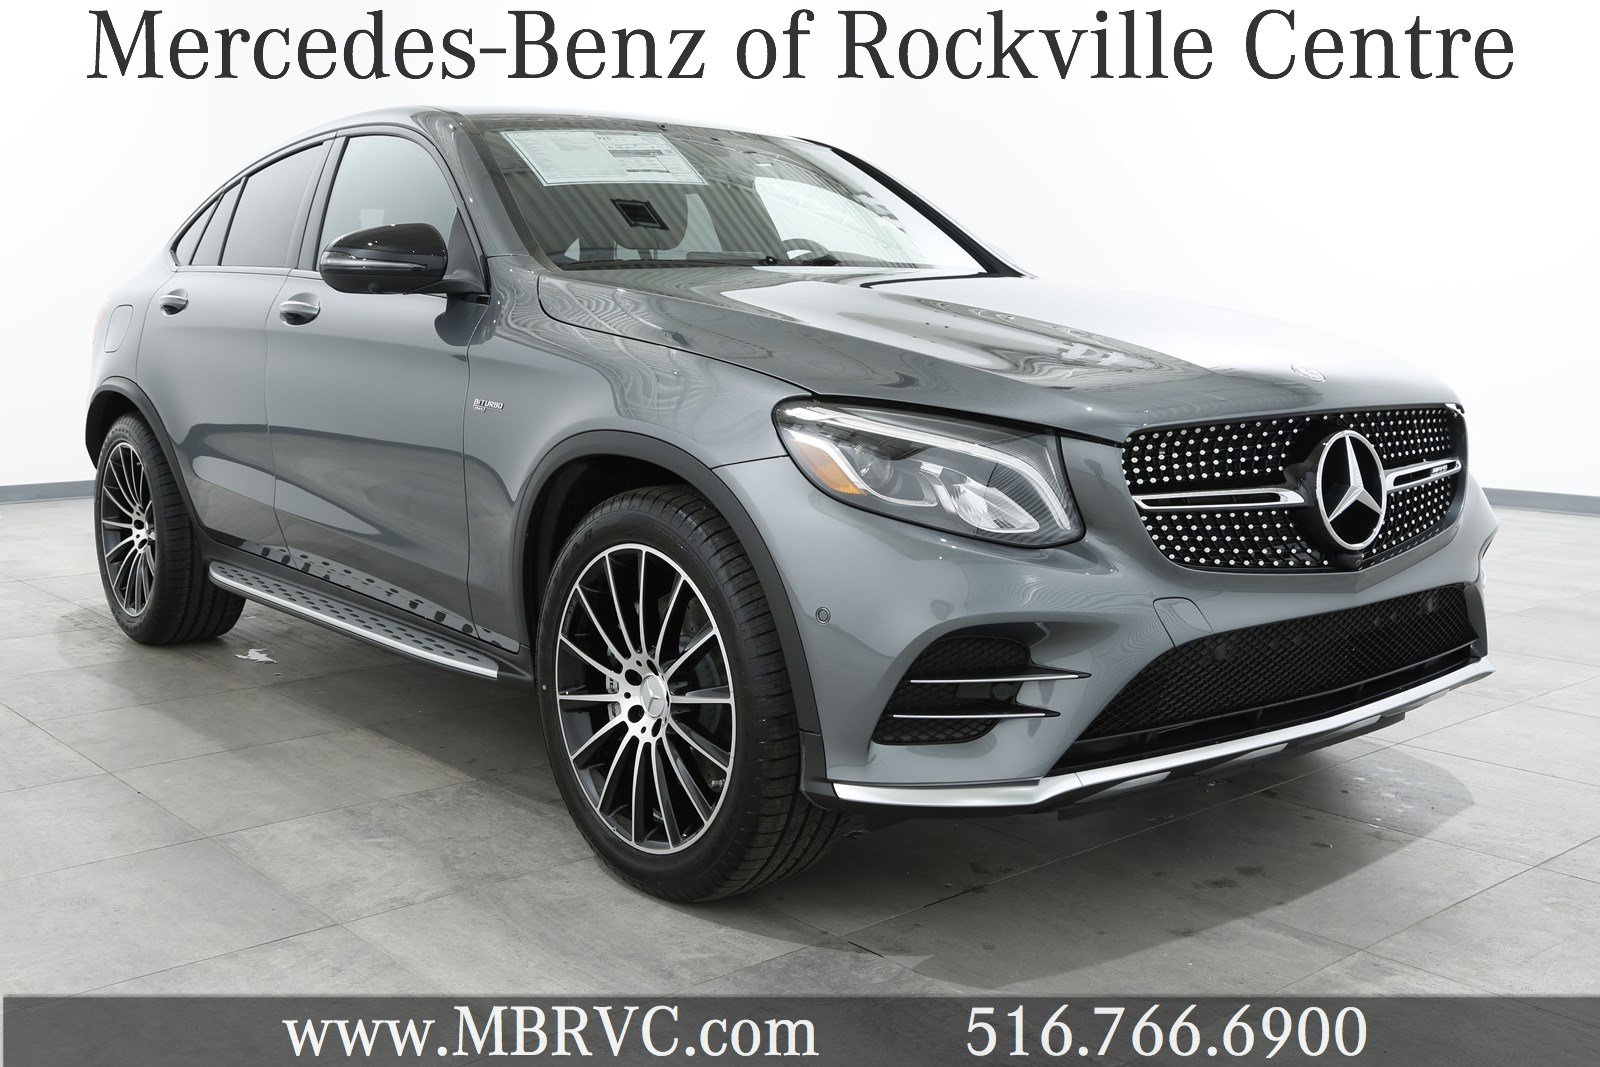 Mercedes benz of rockville centre autos post for Mercedes benz rockville centre service